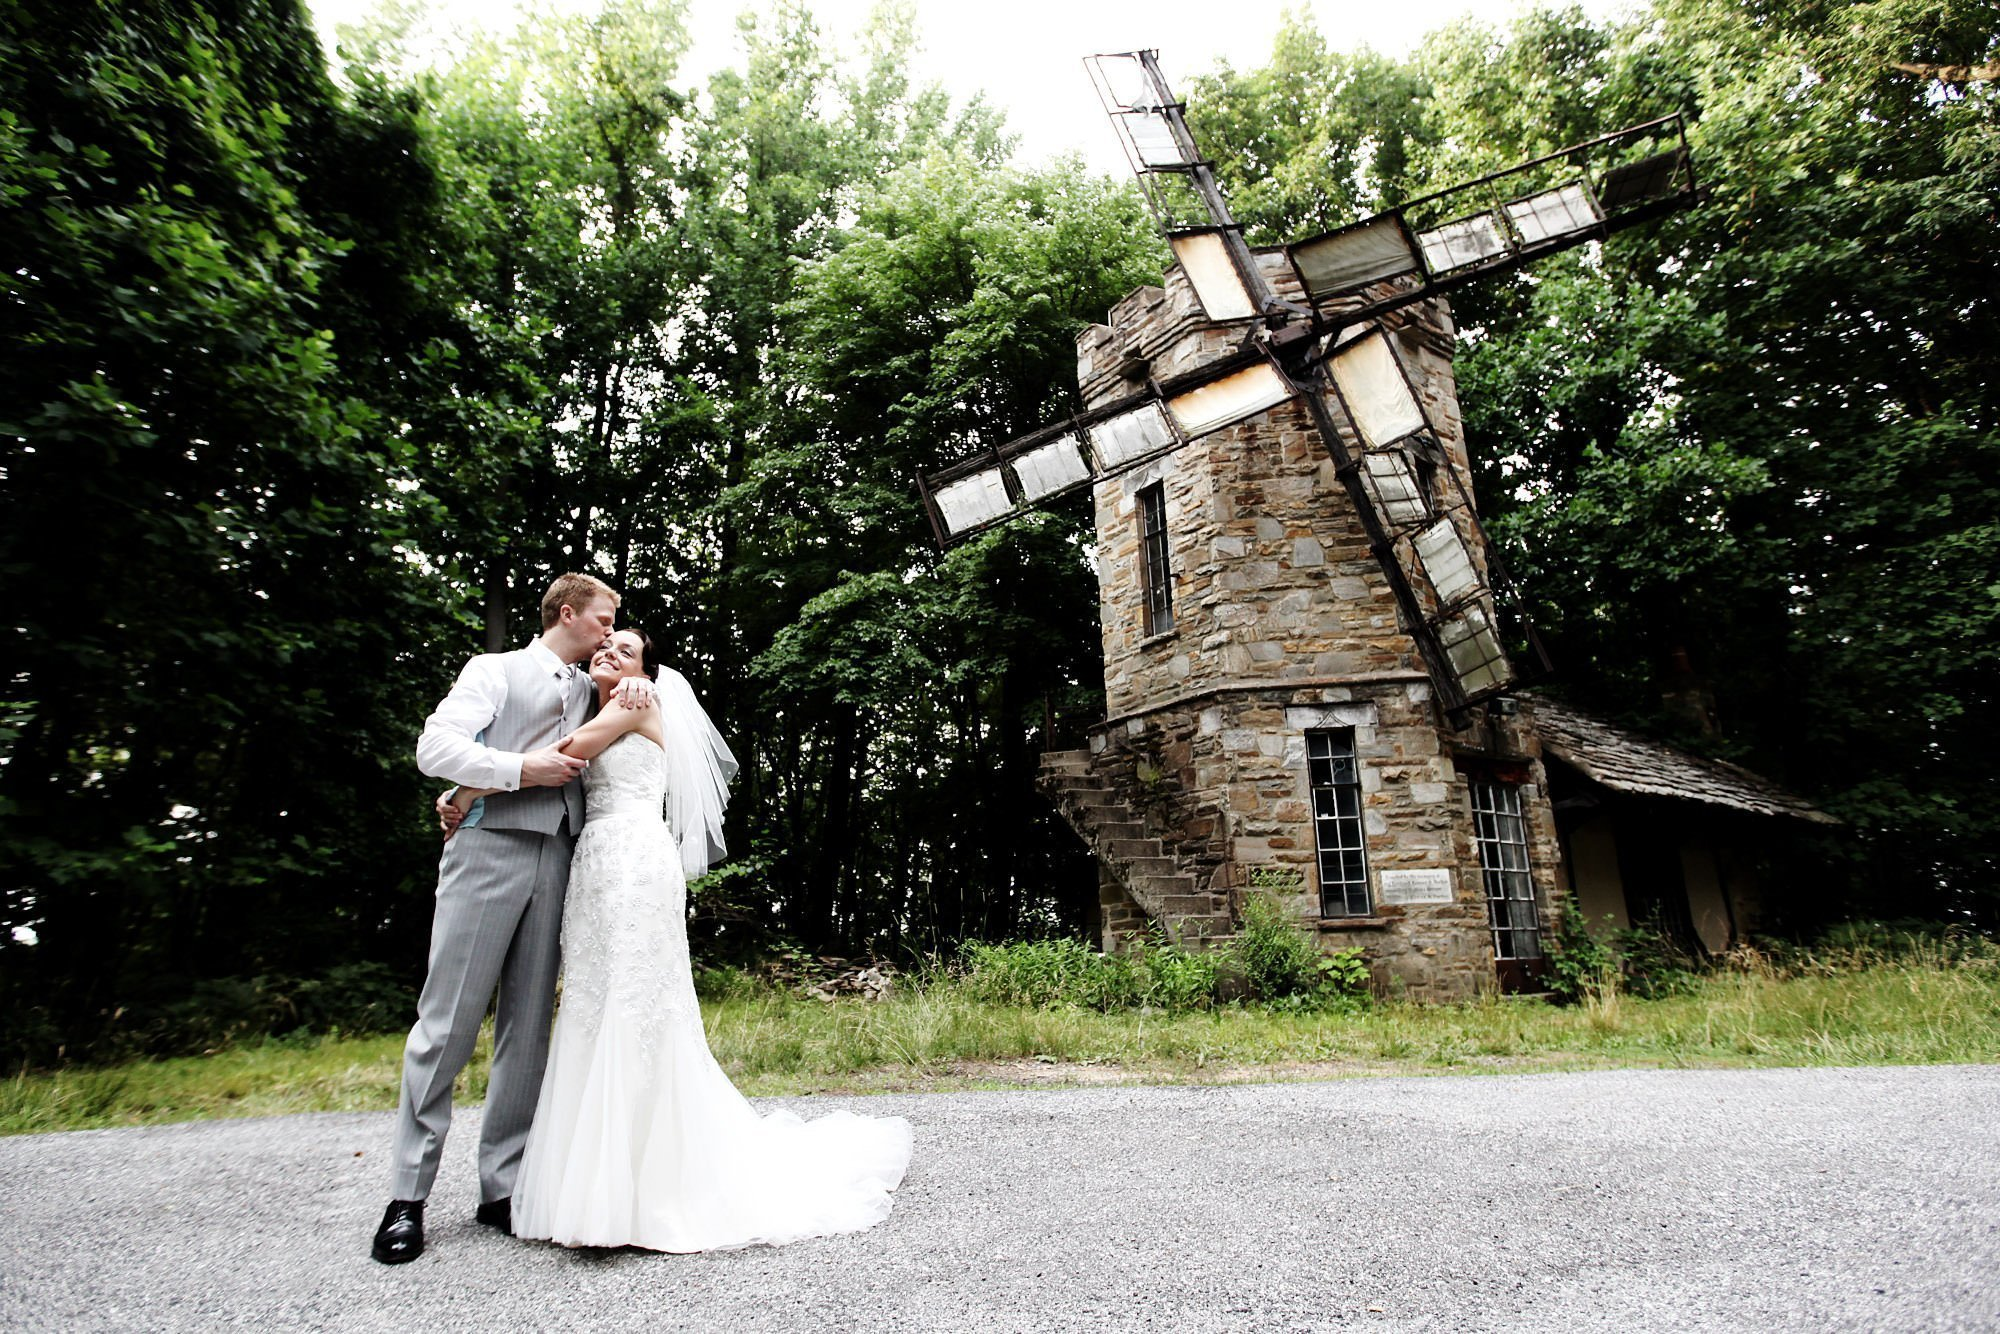 Cloisters Castle Wedding  I  The couple kiss by an old windmill in Lutherville, MD.